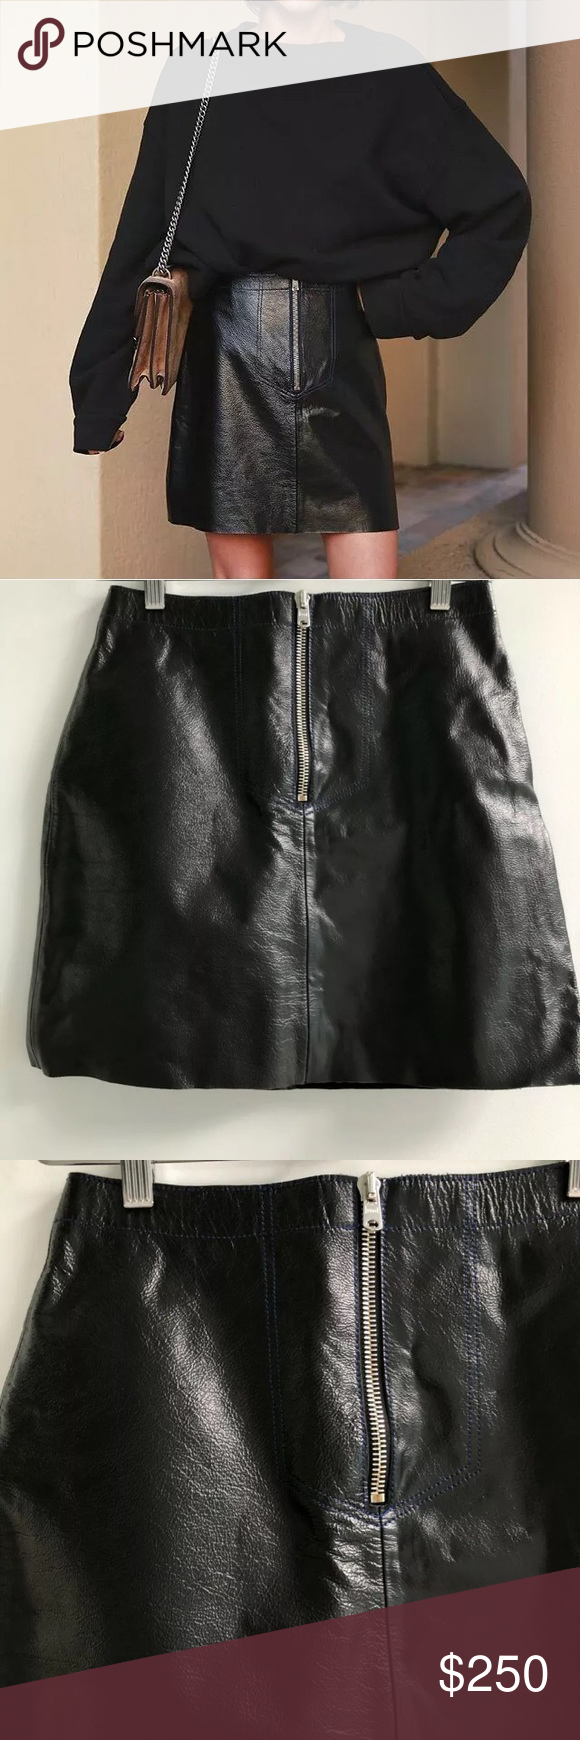 25ccafeba4 NWT Sandro Ray leather skirt size 1 Sandro Ray leather skirt, Sandro size  1, equivalent to a small, new with tags, about 18' long Sandro Skirts Mini